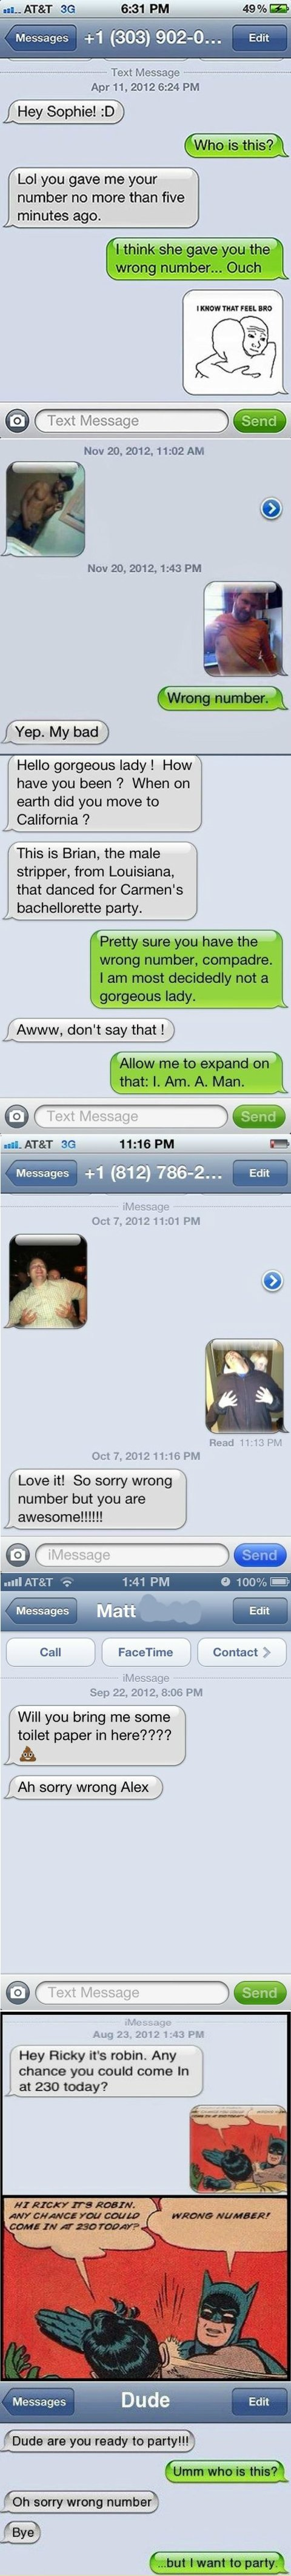 funny-picture-wrong-number-compilation